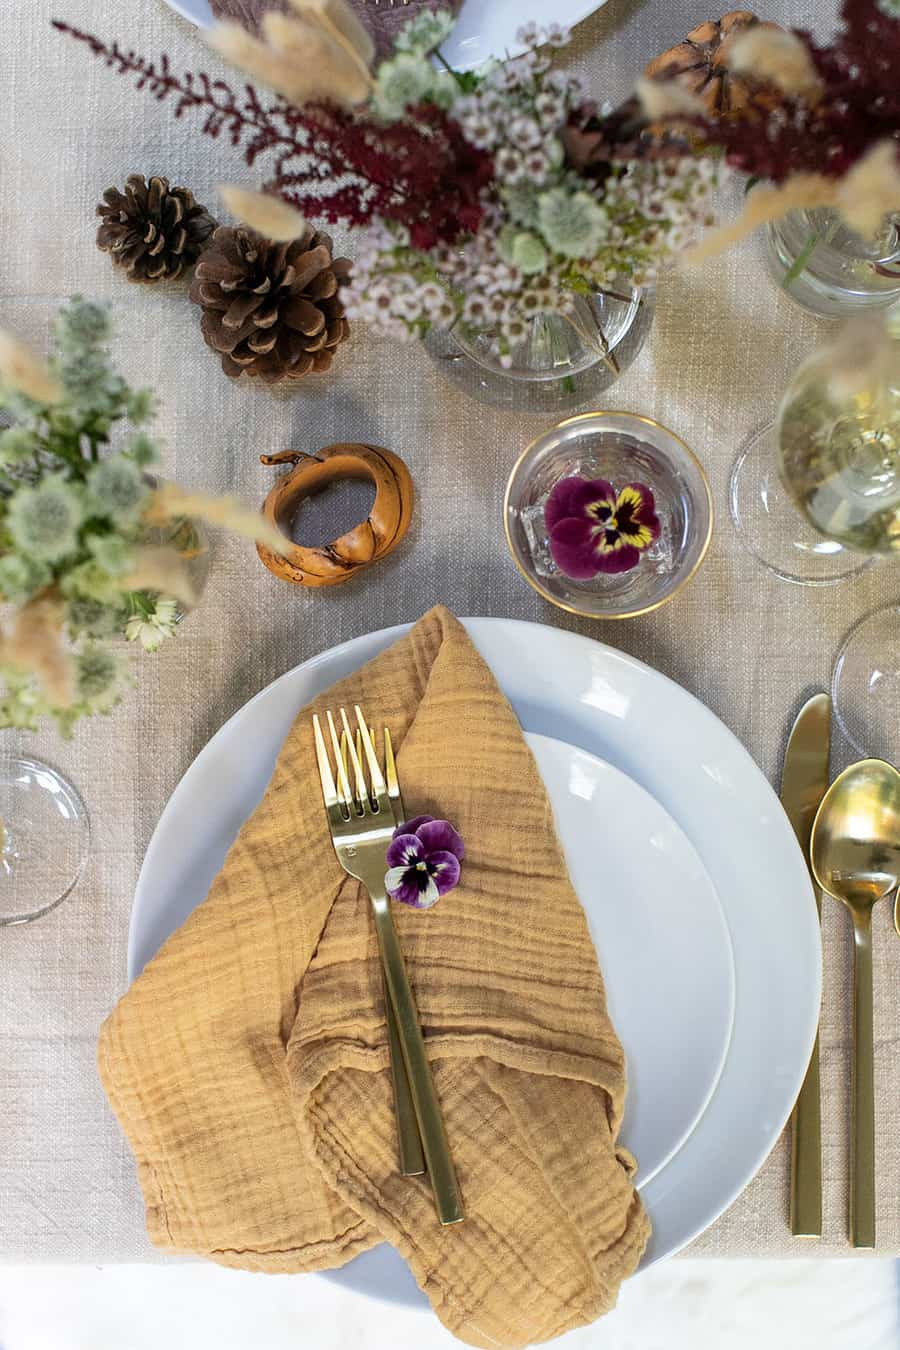 Yellow crinkle napkin from Food52 and gold flatware from Fortessa and Williams Sonoma